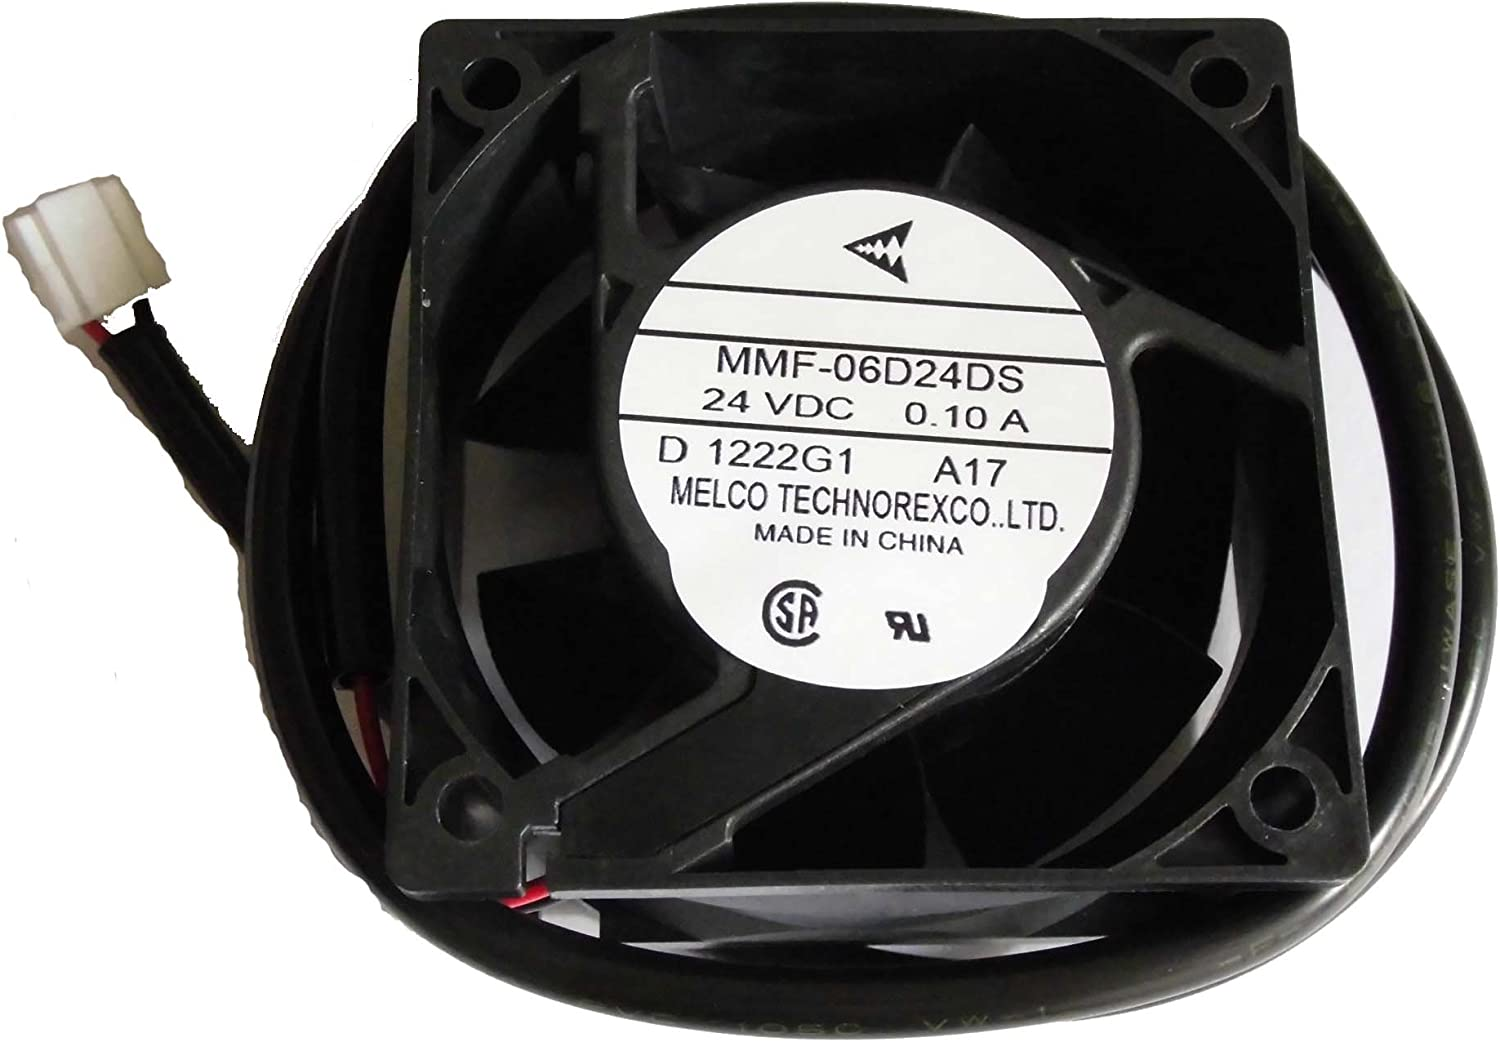 MITSUBISHI 60*25mm MMF-06D24DS A17 YASKAWA 300-017-249 24V 0.1A 2Wire Cooling Fan